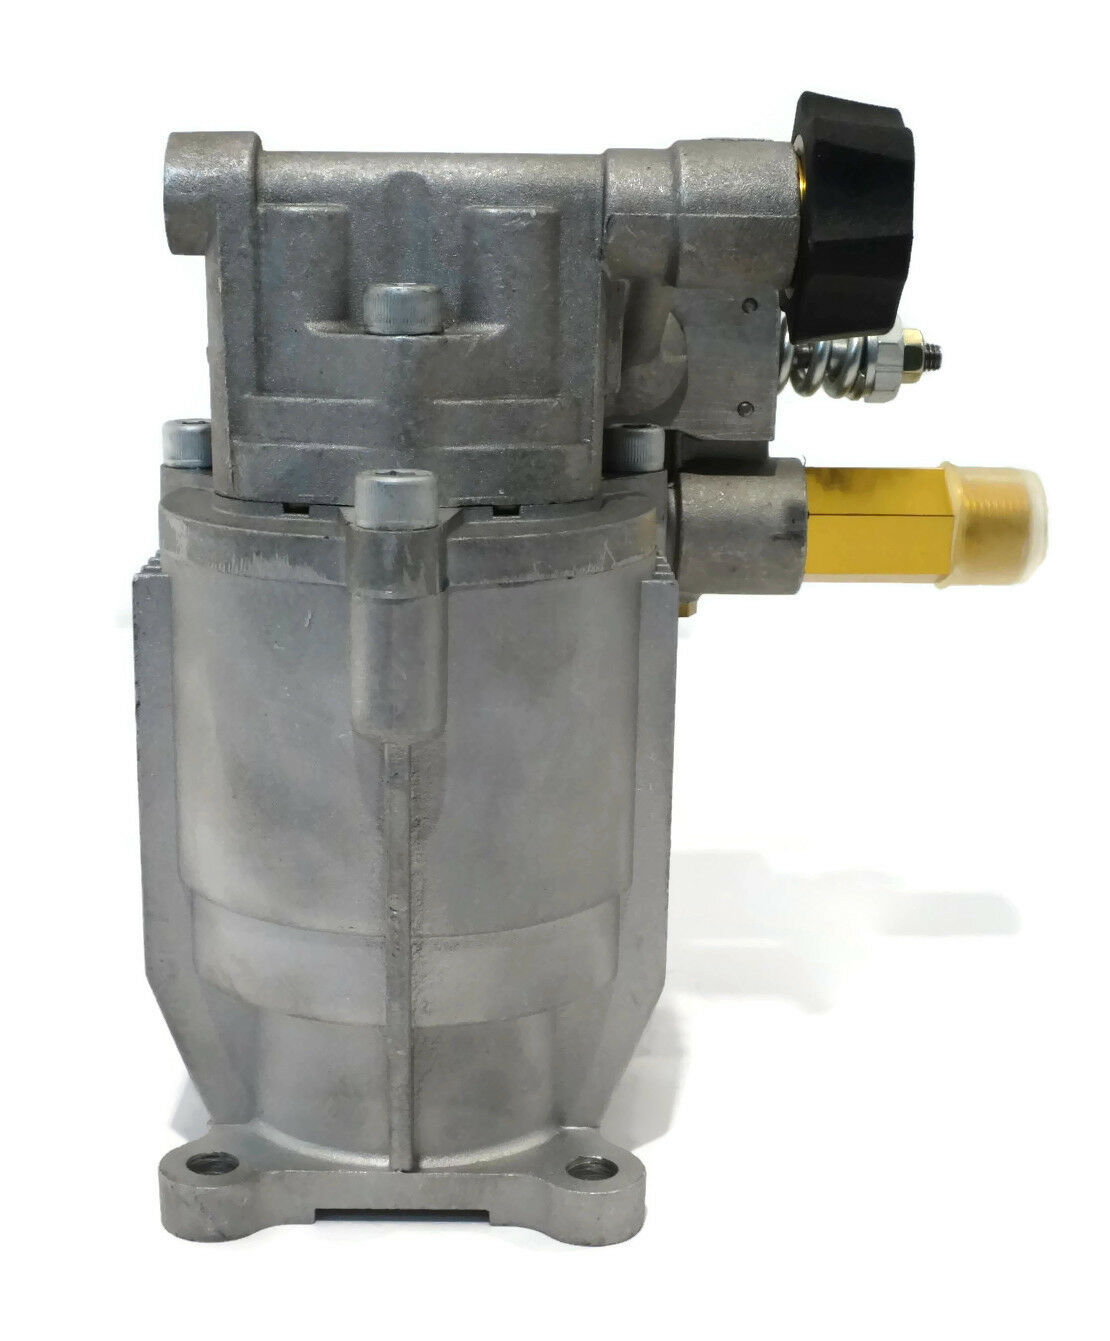 New Pressure Washer Pump Fits Honda Excell Xr2500 Xr2600